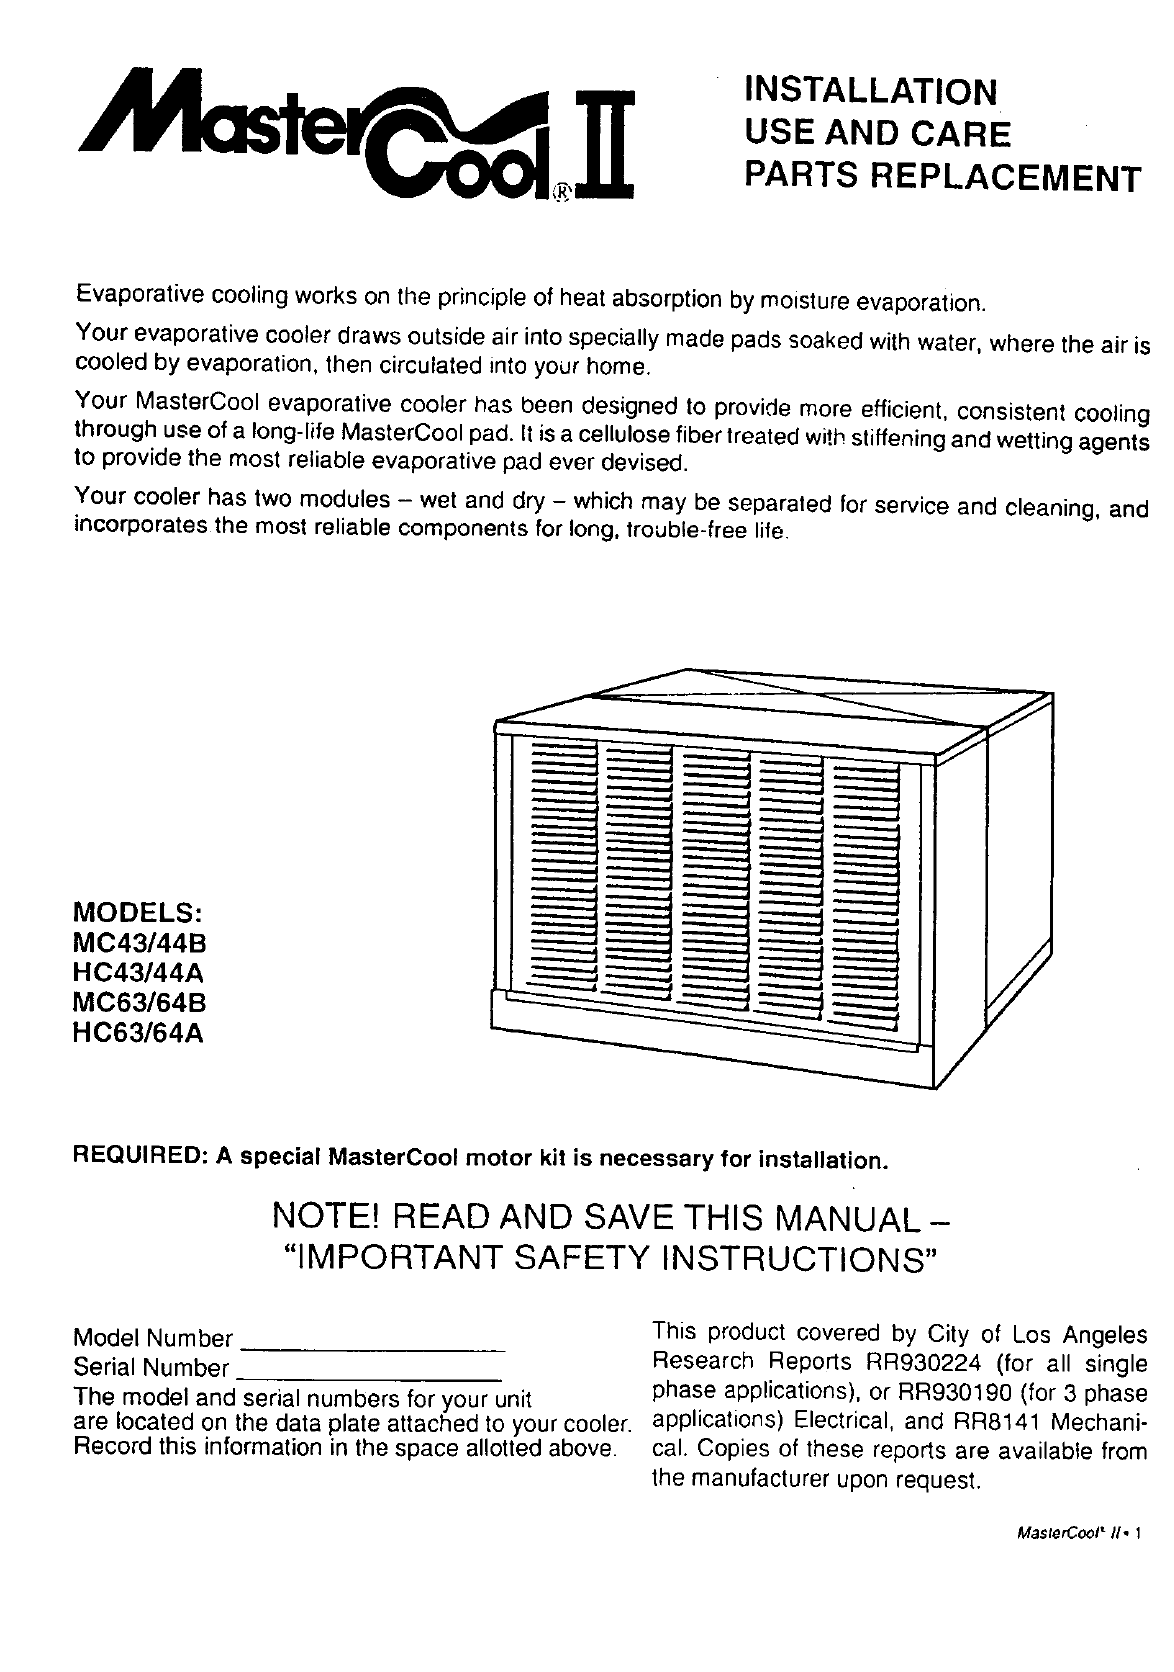 Swamp Cooler Power Supply Wiring Diagram Adobeair Evaporative Manual L9070130 Hc43a Adobe Aire Manuals And Guides View The Owners For Your